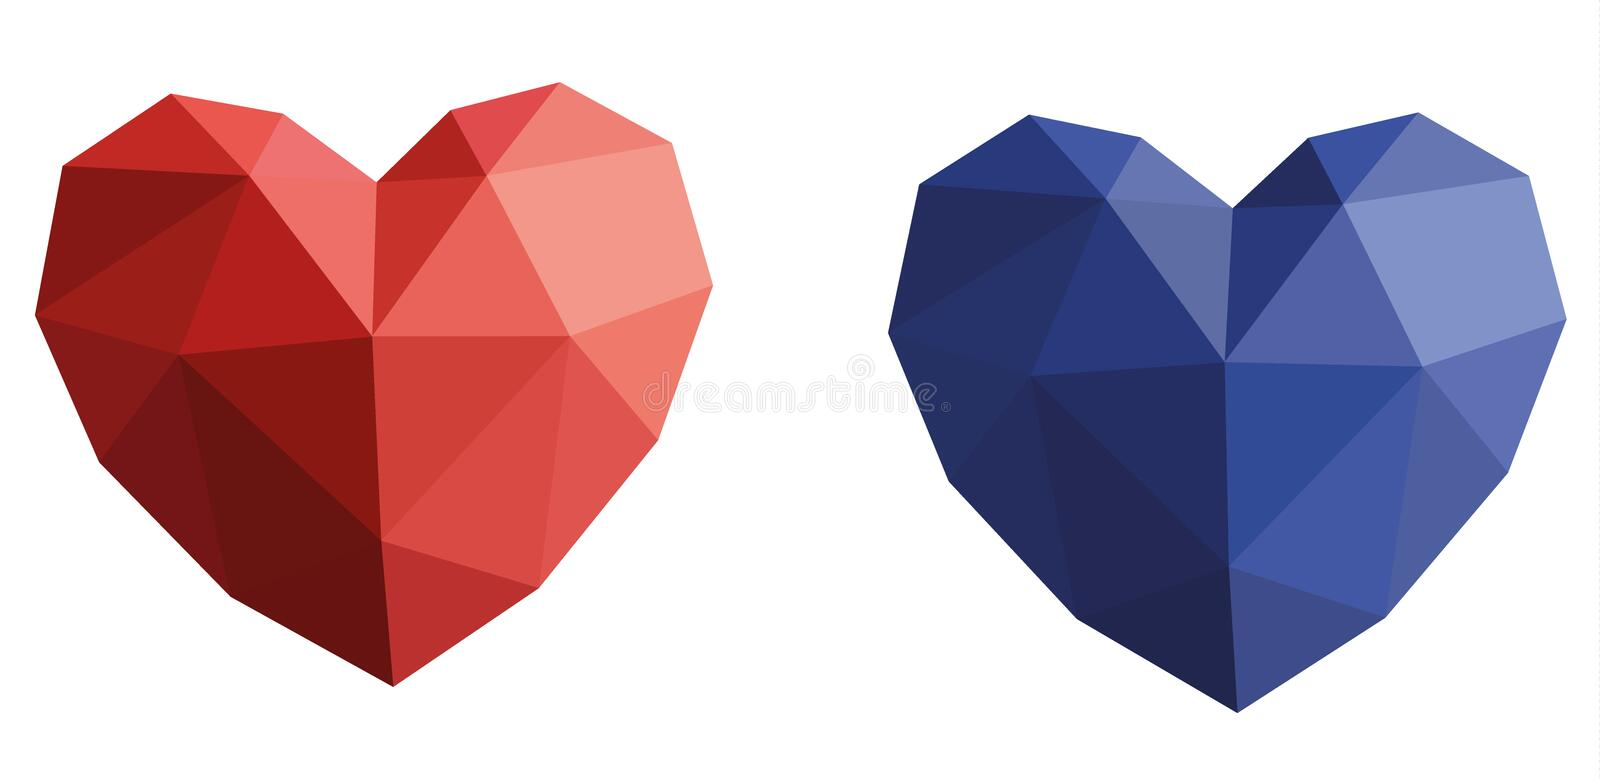 Two volumetric hearts of red and blue. Volumetric heart of colored paper vector illustration